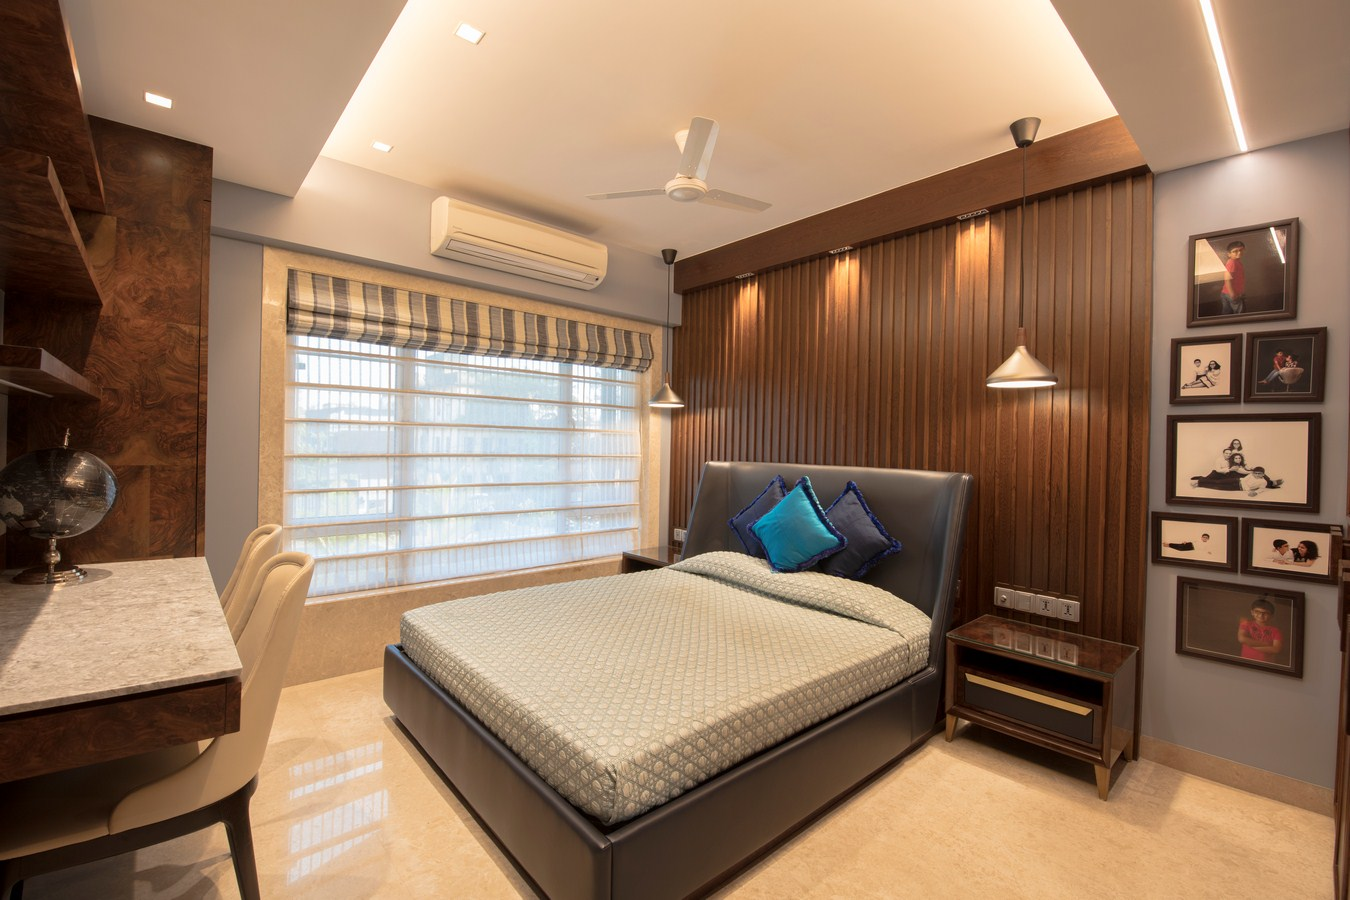 Residence Interiors By Rupandeshah Associates - Sheet1